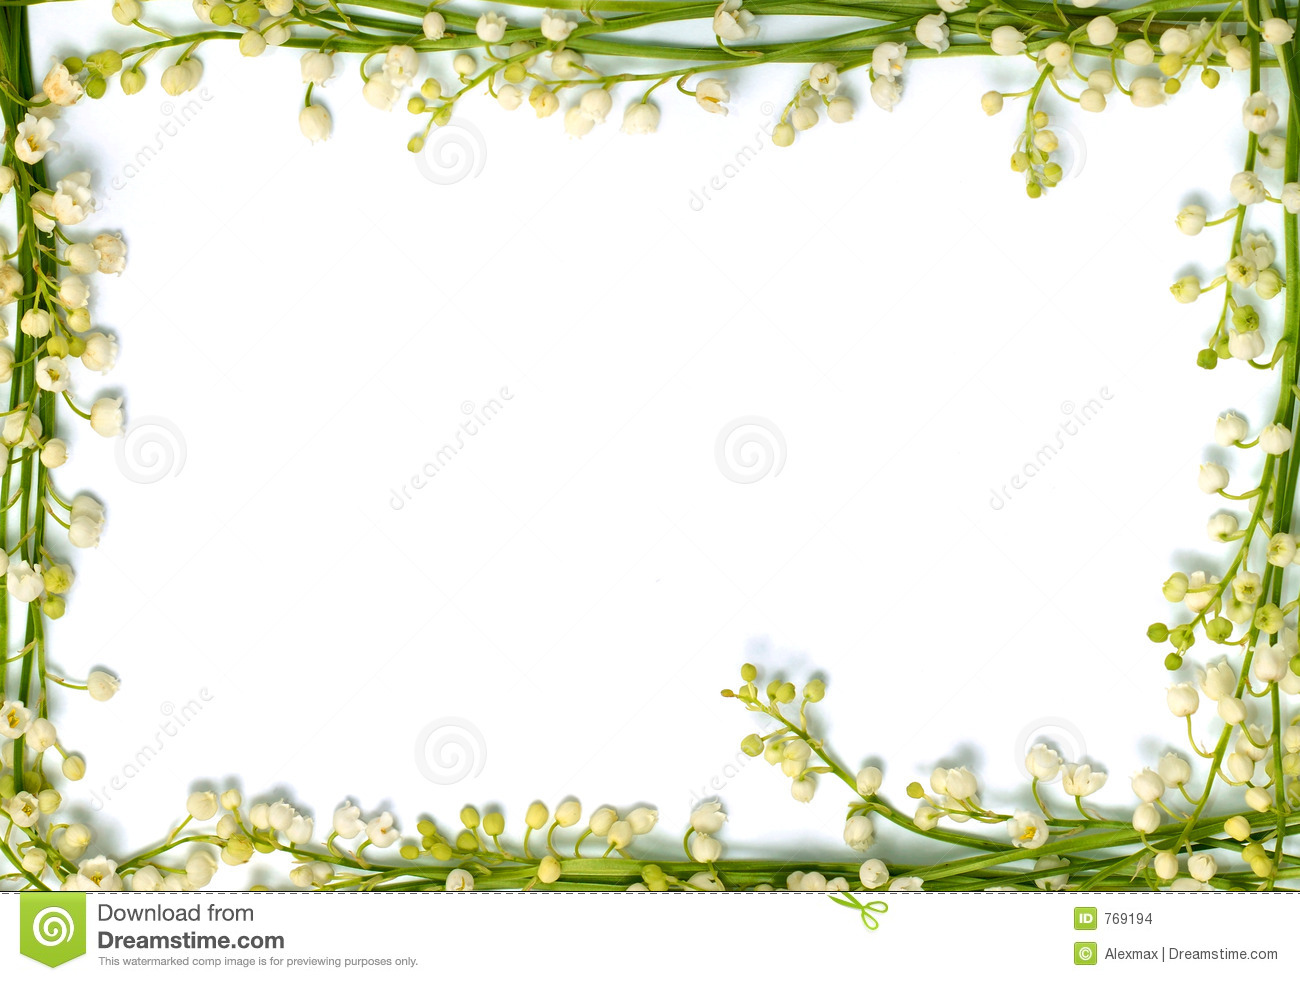 Lily of the valley flowers on paper frame border isolated horizo download lily of the valley flowers on paper frame border isolated horizo stock photo image mightylinksfo